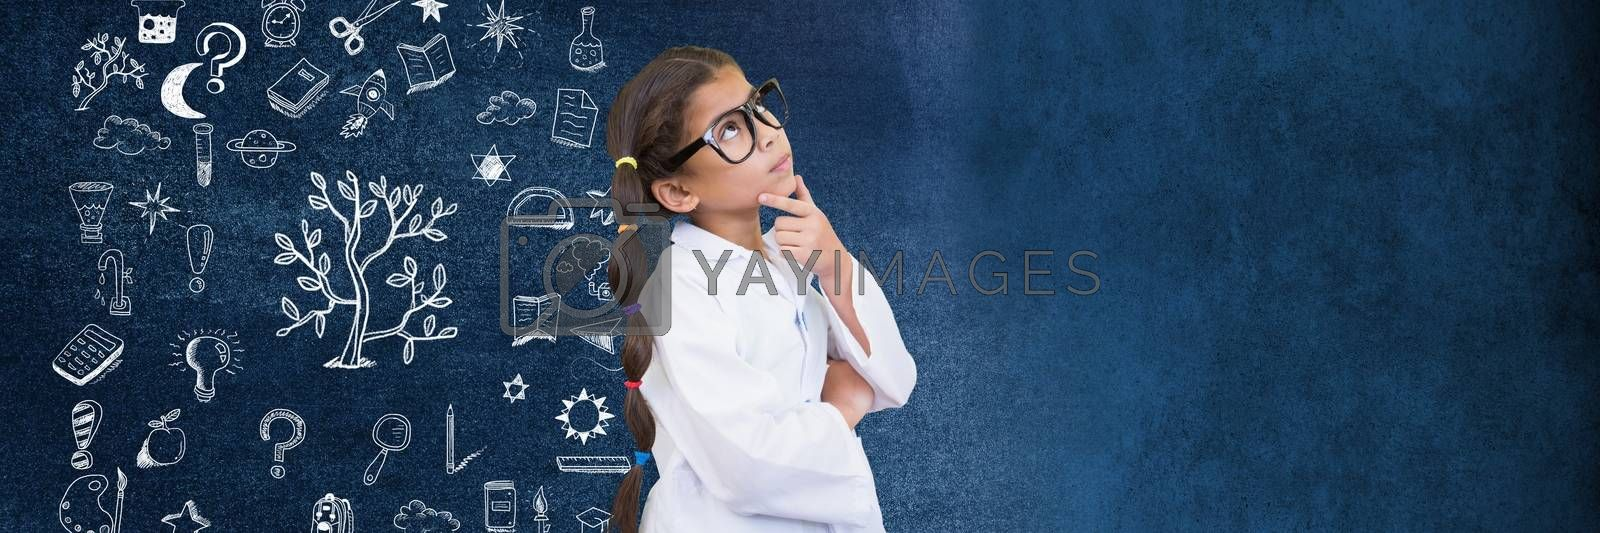 Digital composite of School girl scientist and Education drawing on blackboard for school